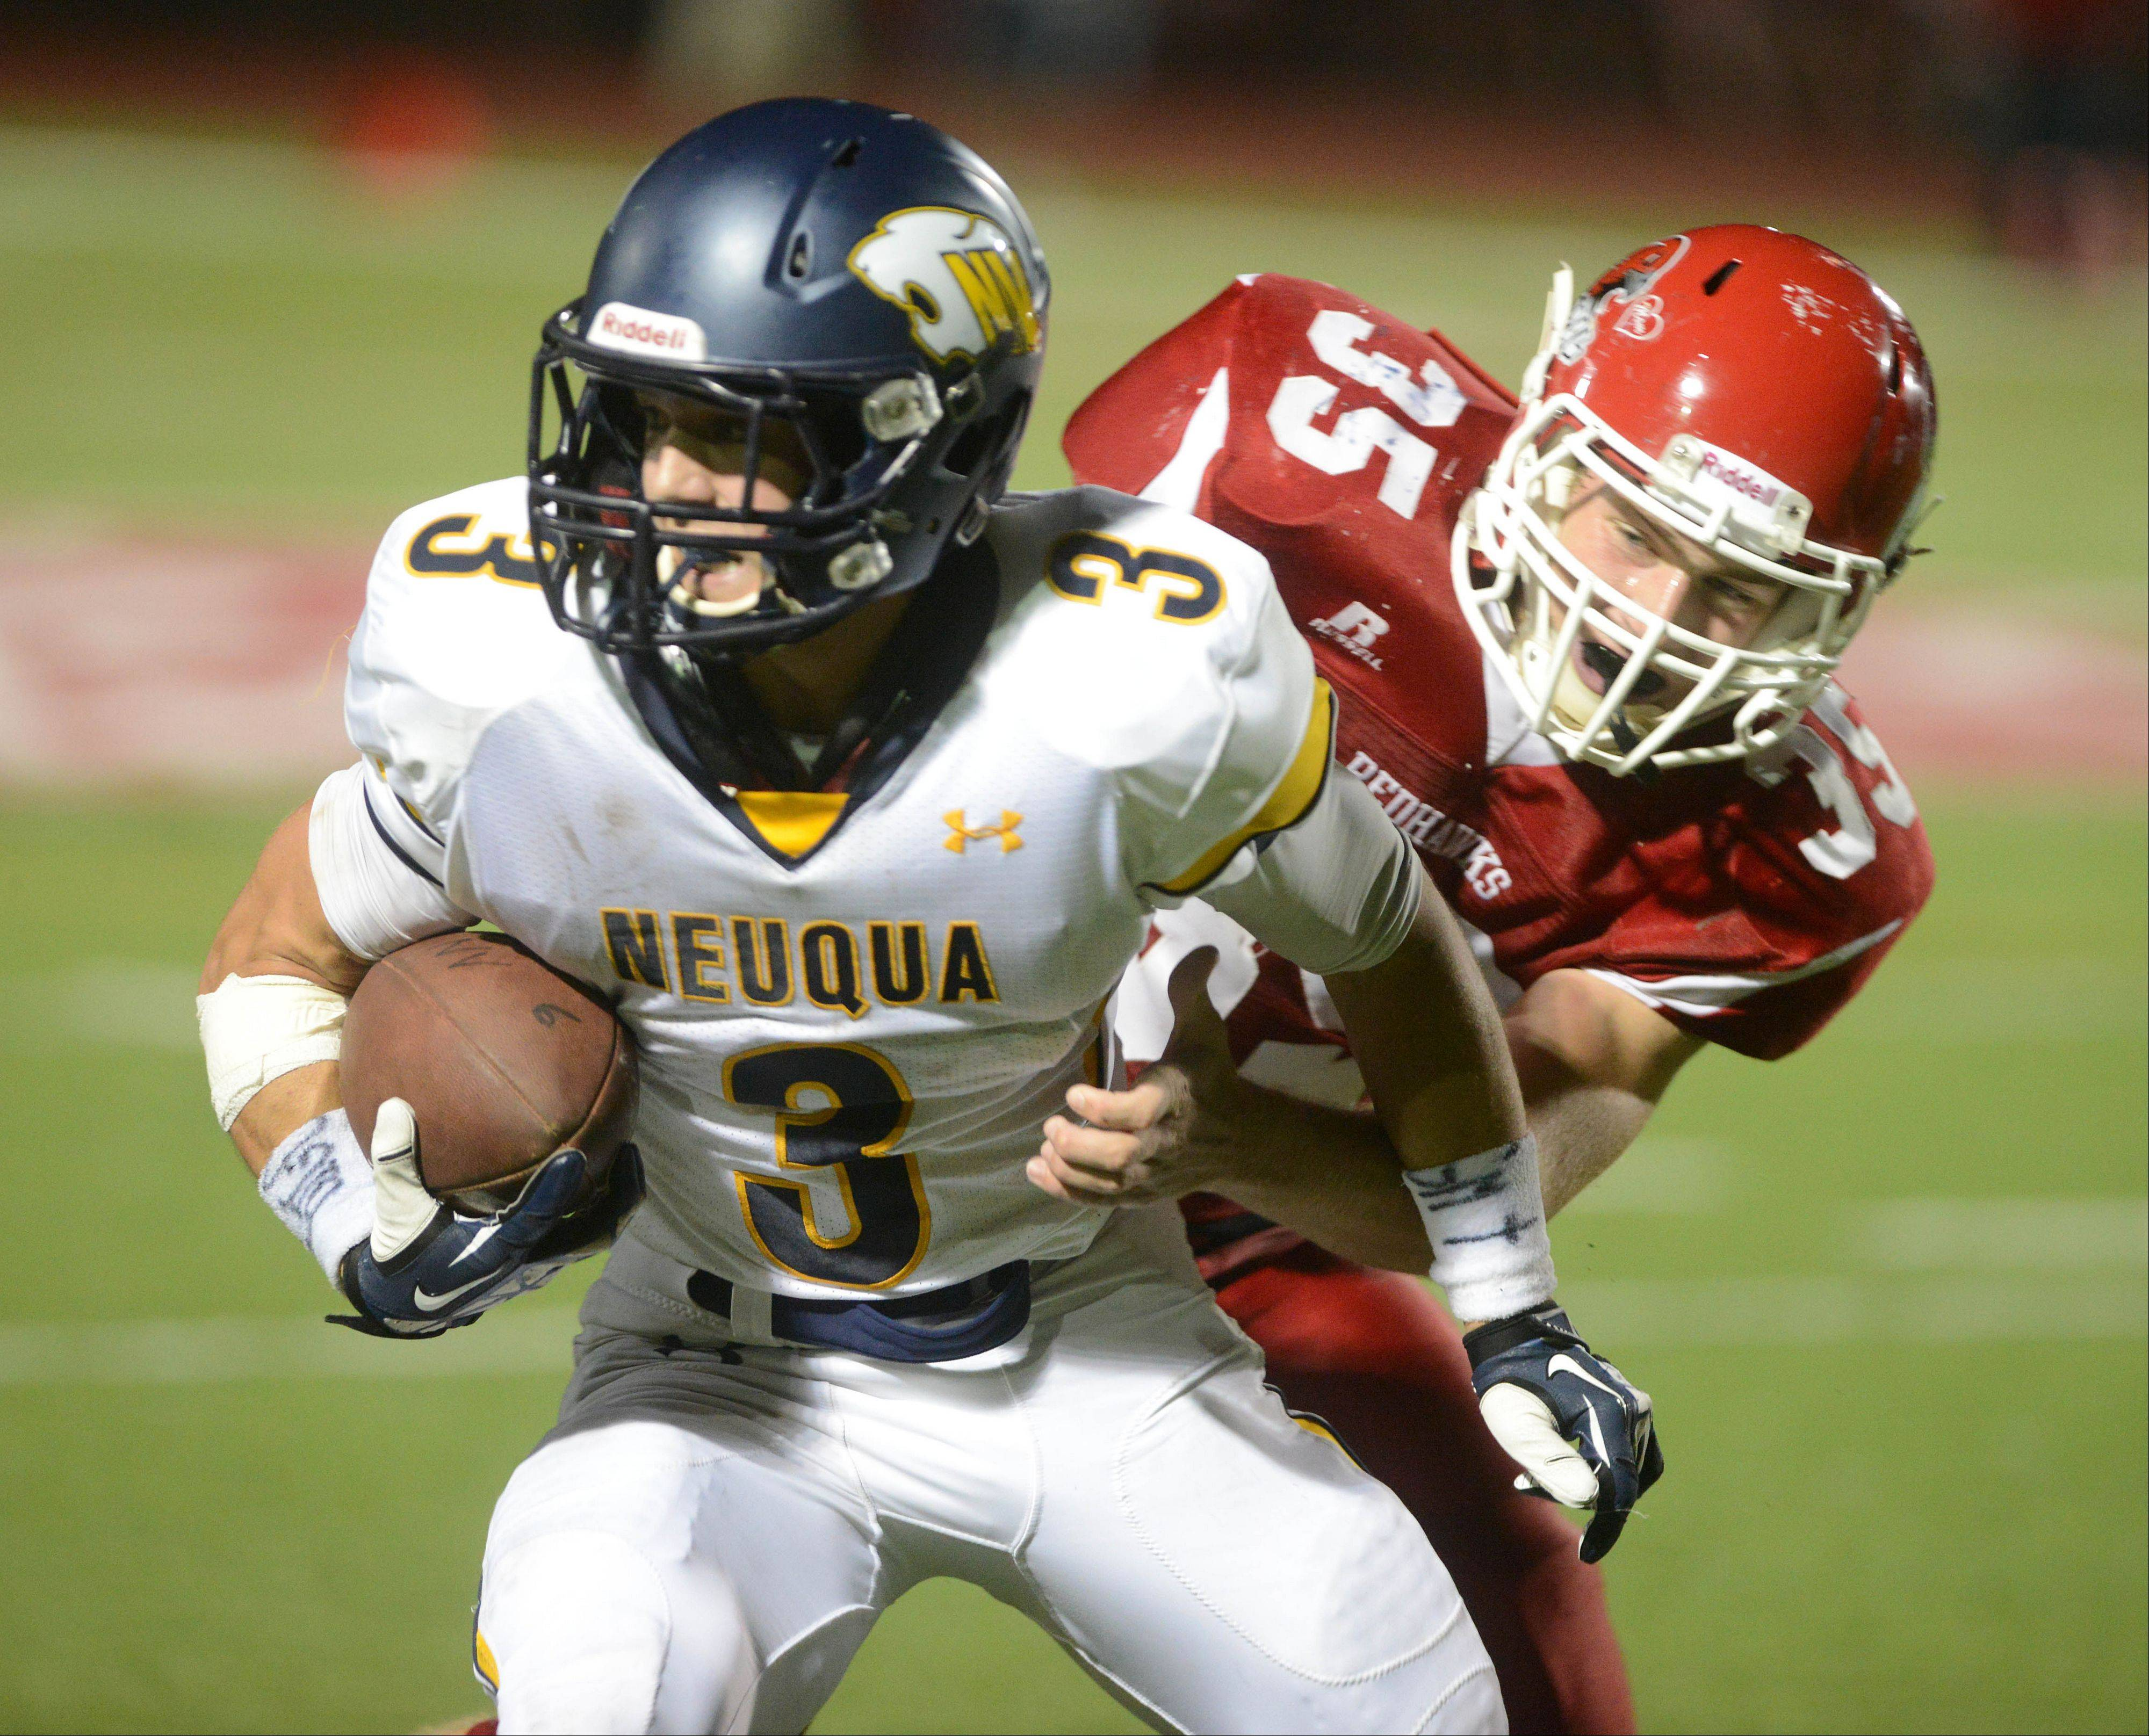 Images: Neuqua Valley vs. Naperville Central